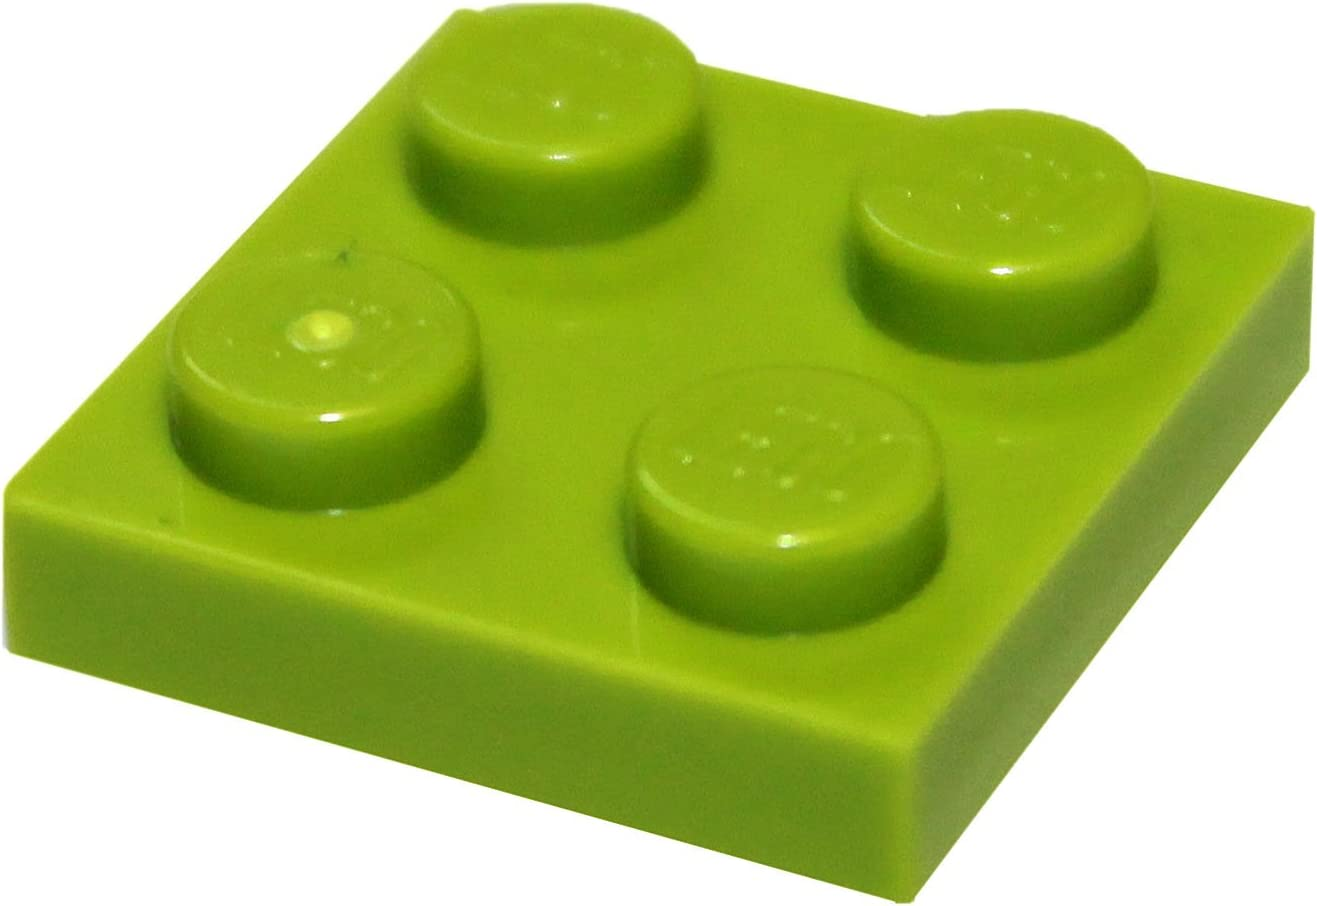 LEGO Parts and Pieces: Lime (Bright Yellowish Green) 2x2 Plate x100